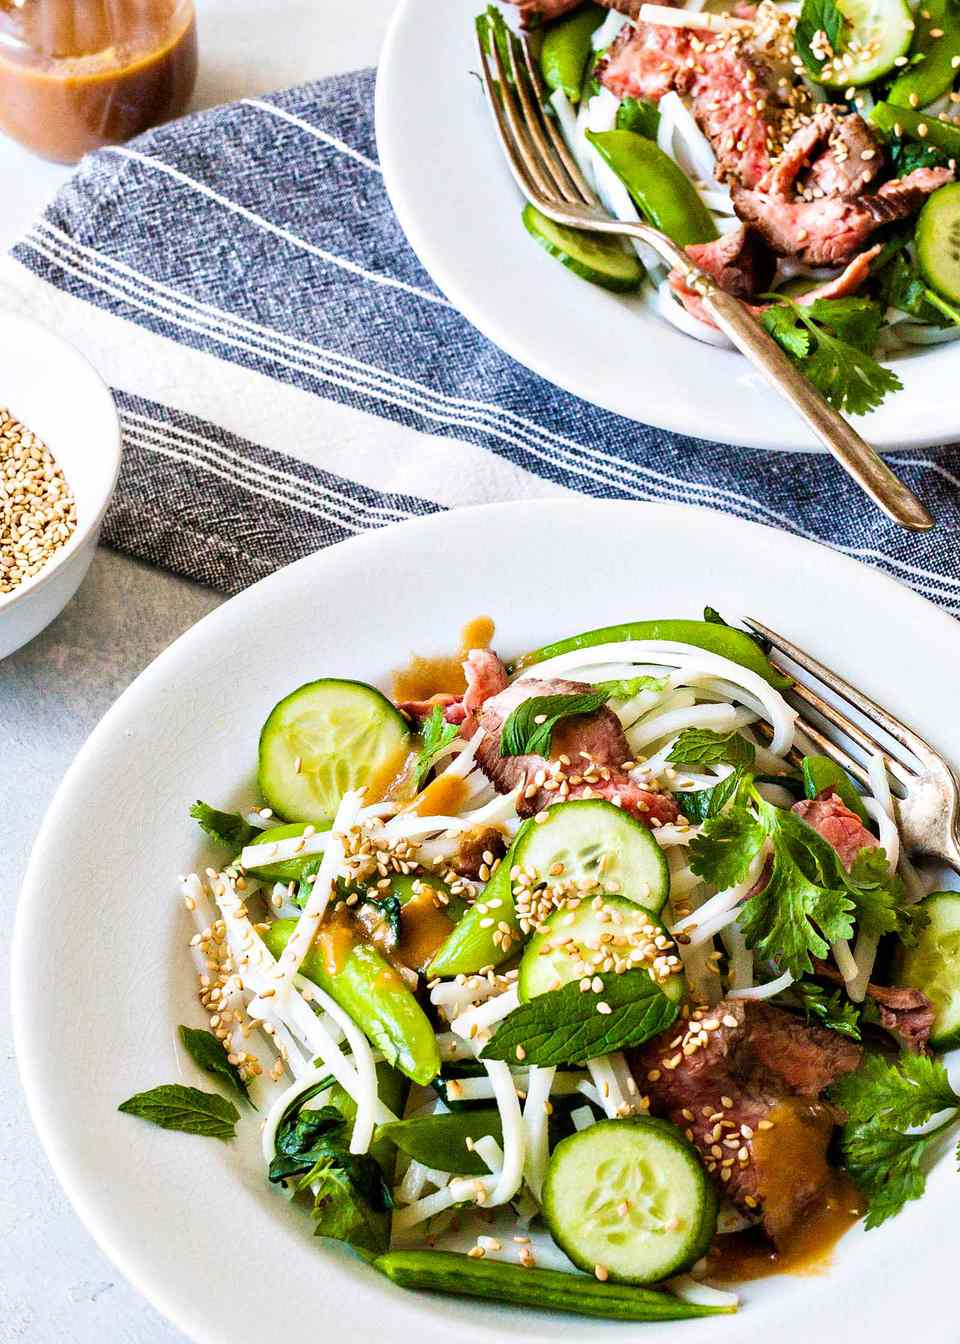 Beef Noodle Bowl - noodle salad with beef and vegtables in a white bowl